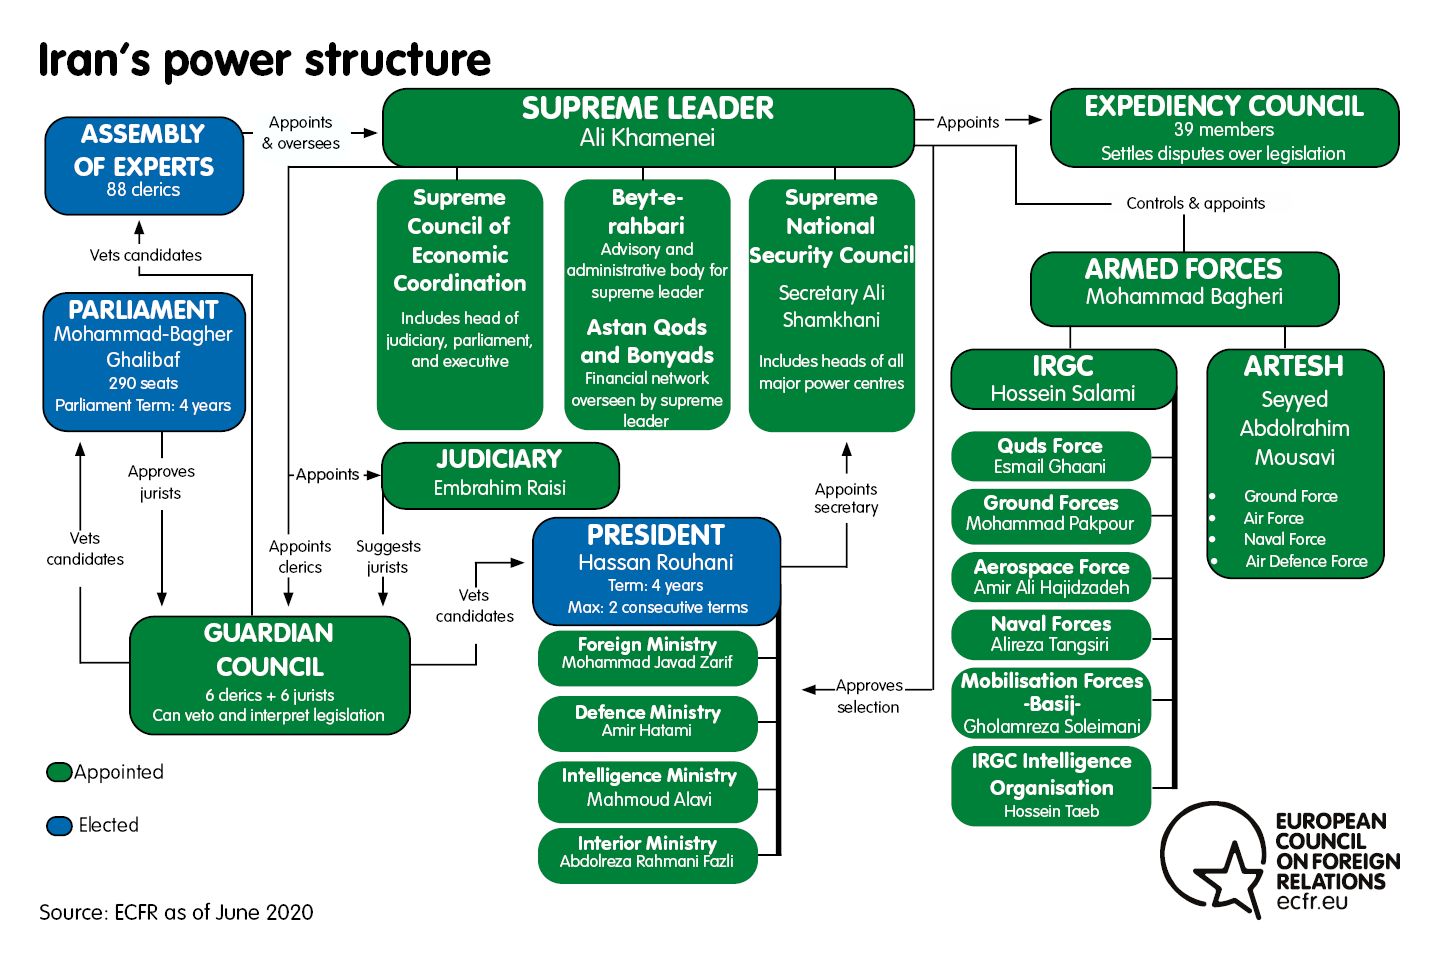 Chart of Iran's power structure